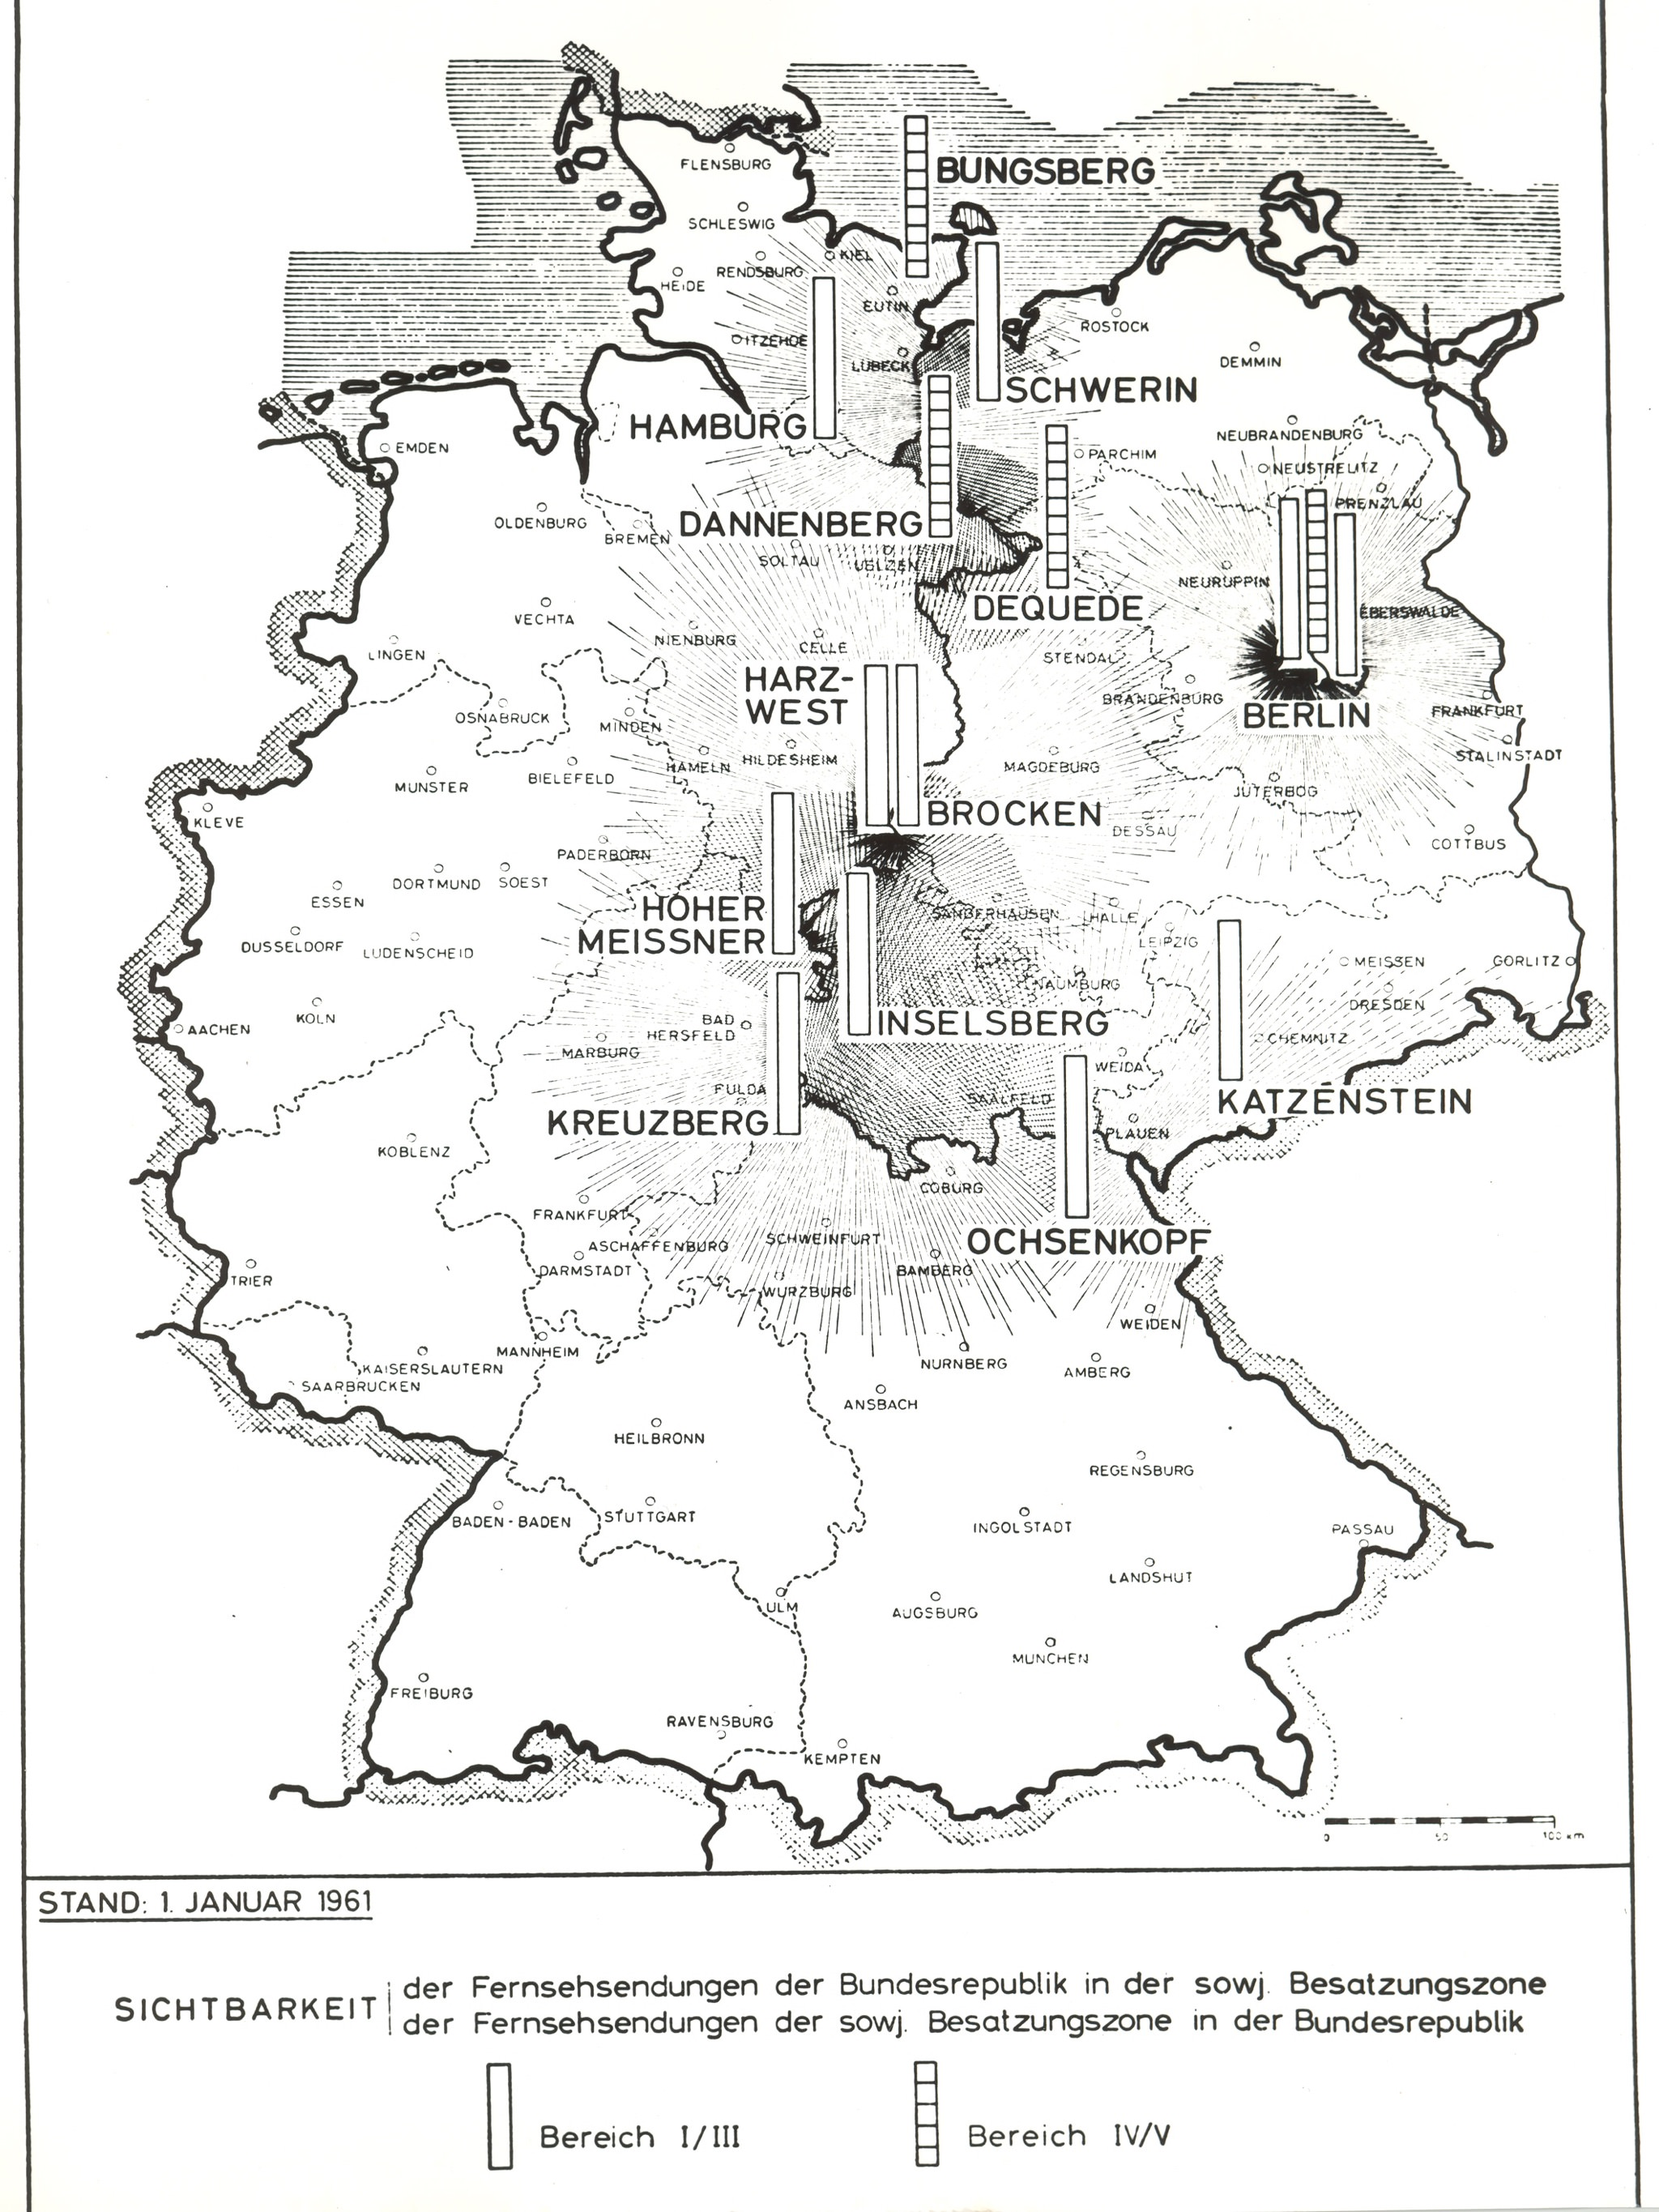 Map showing visibility range of West German and Soviet Zone television broadcasts